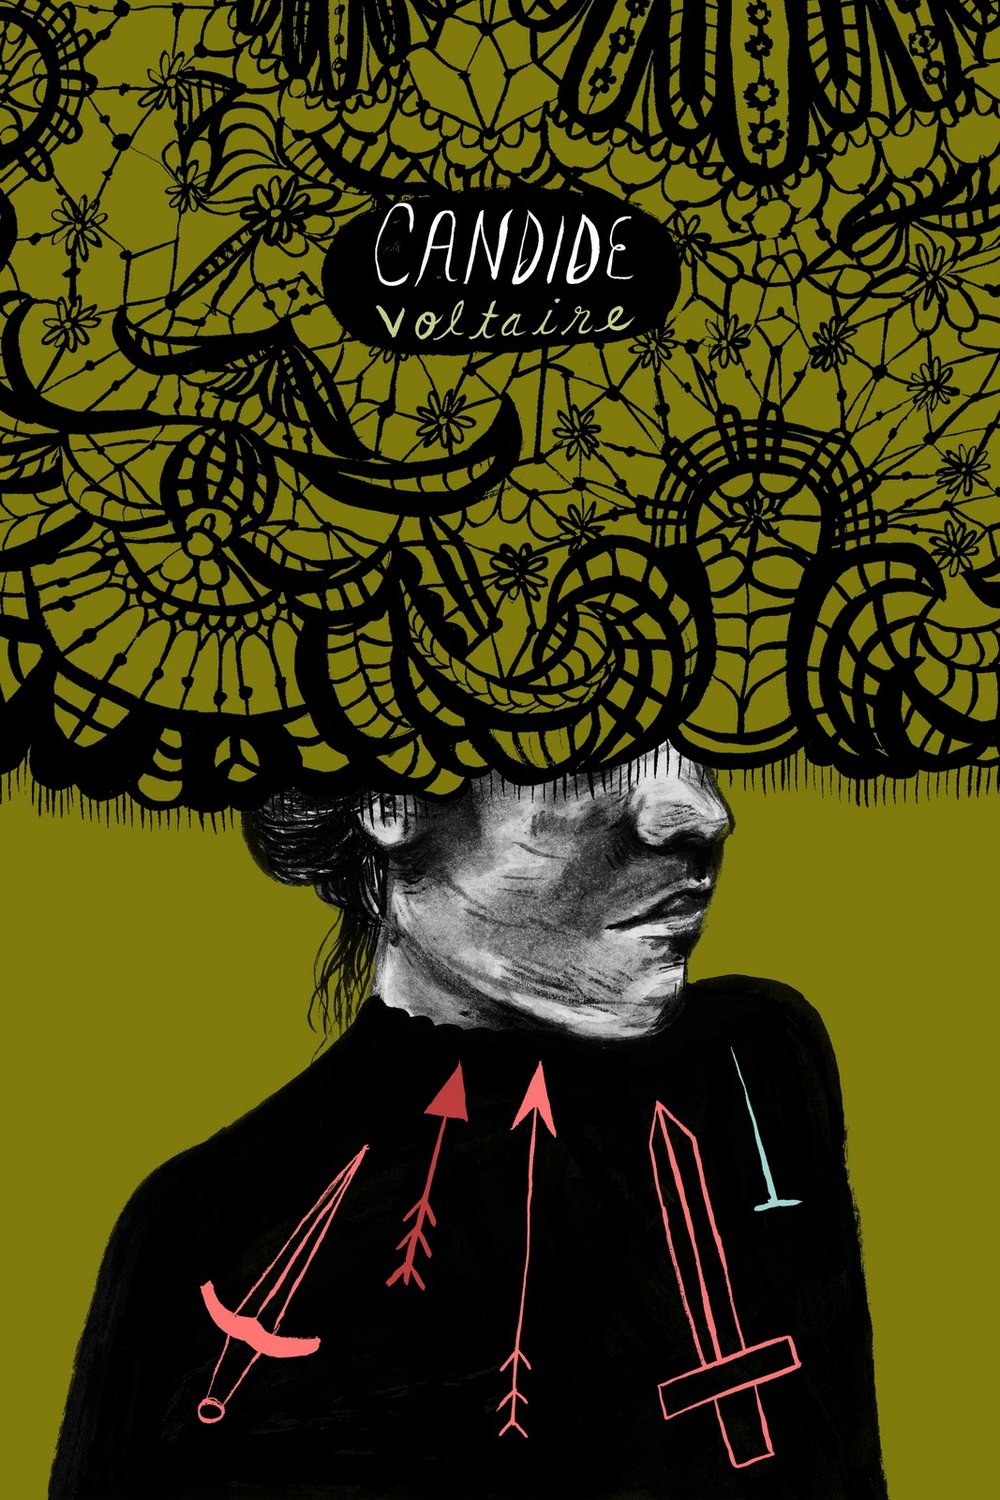 Book Cover Candide.jpg